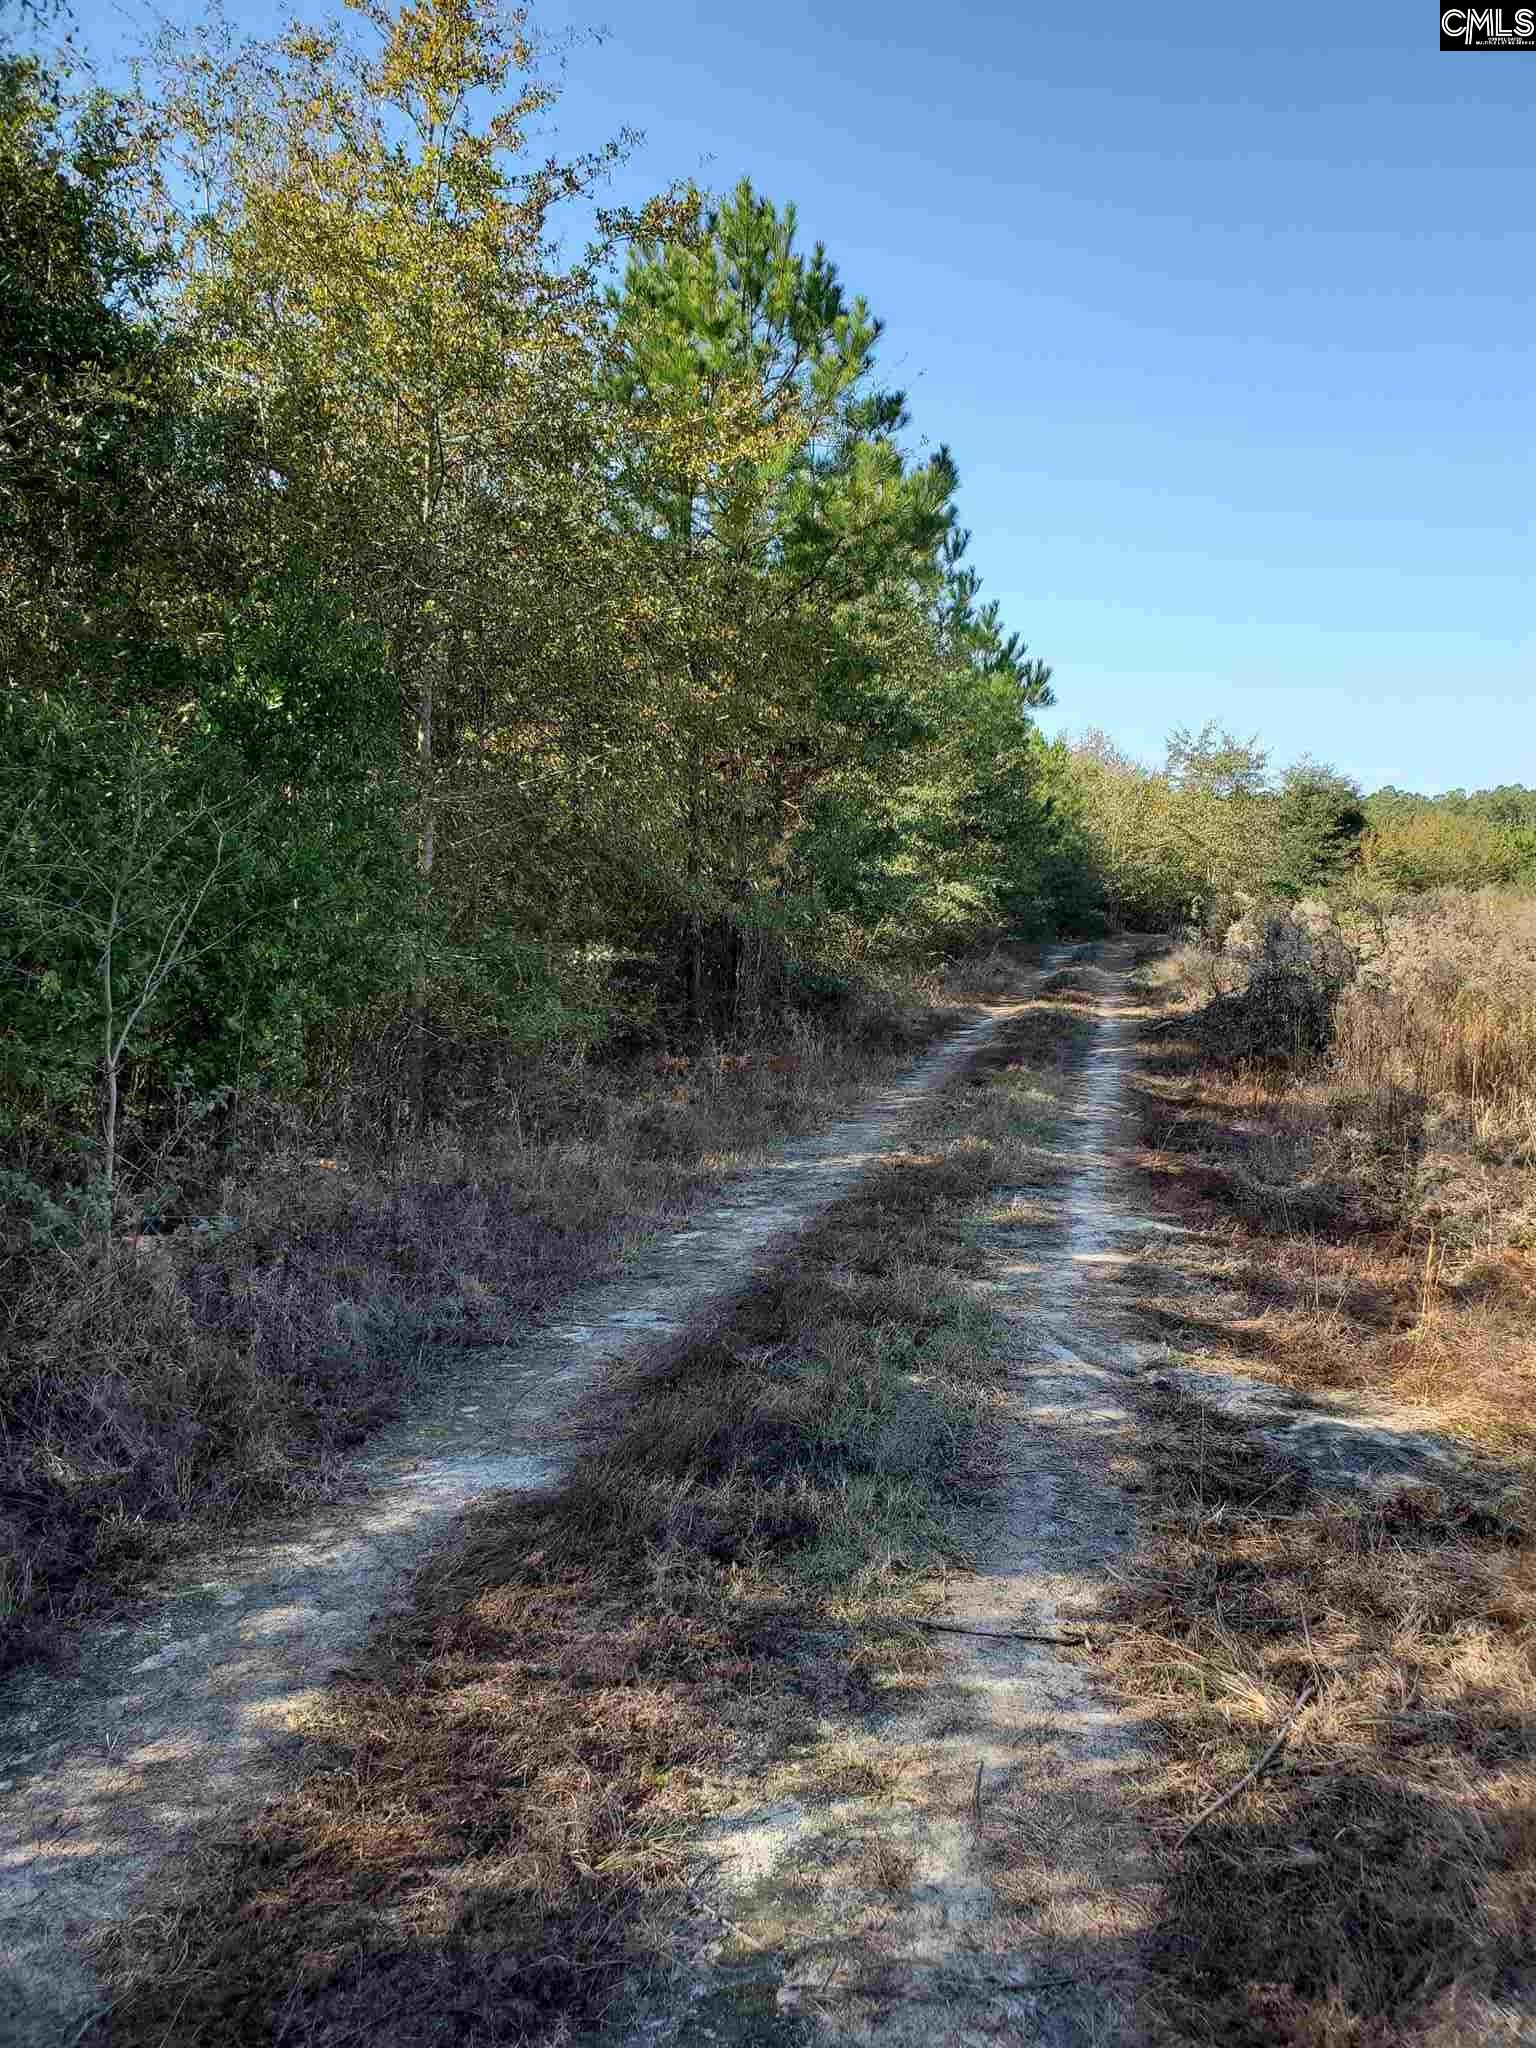 Highway 3 UNIT Tract 5 North, SC 29112